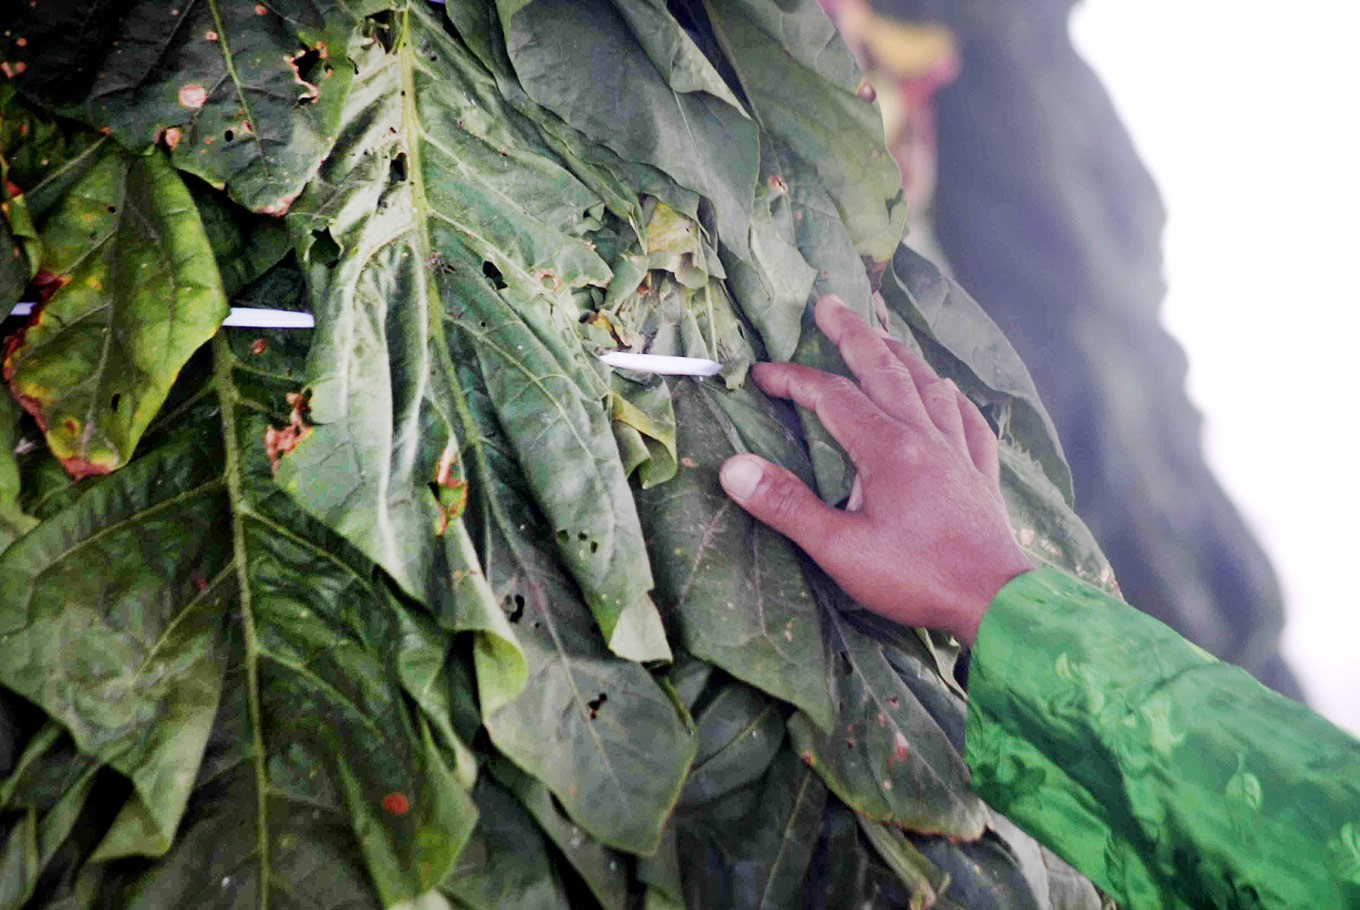 Our produce: A farmer checks on a tobacco offering before it is paraded.